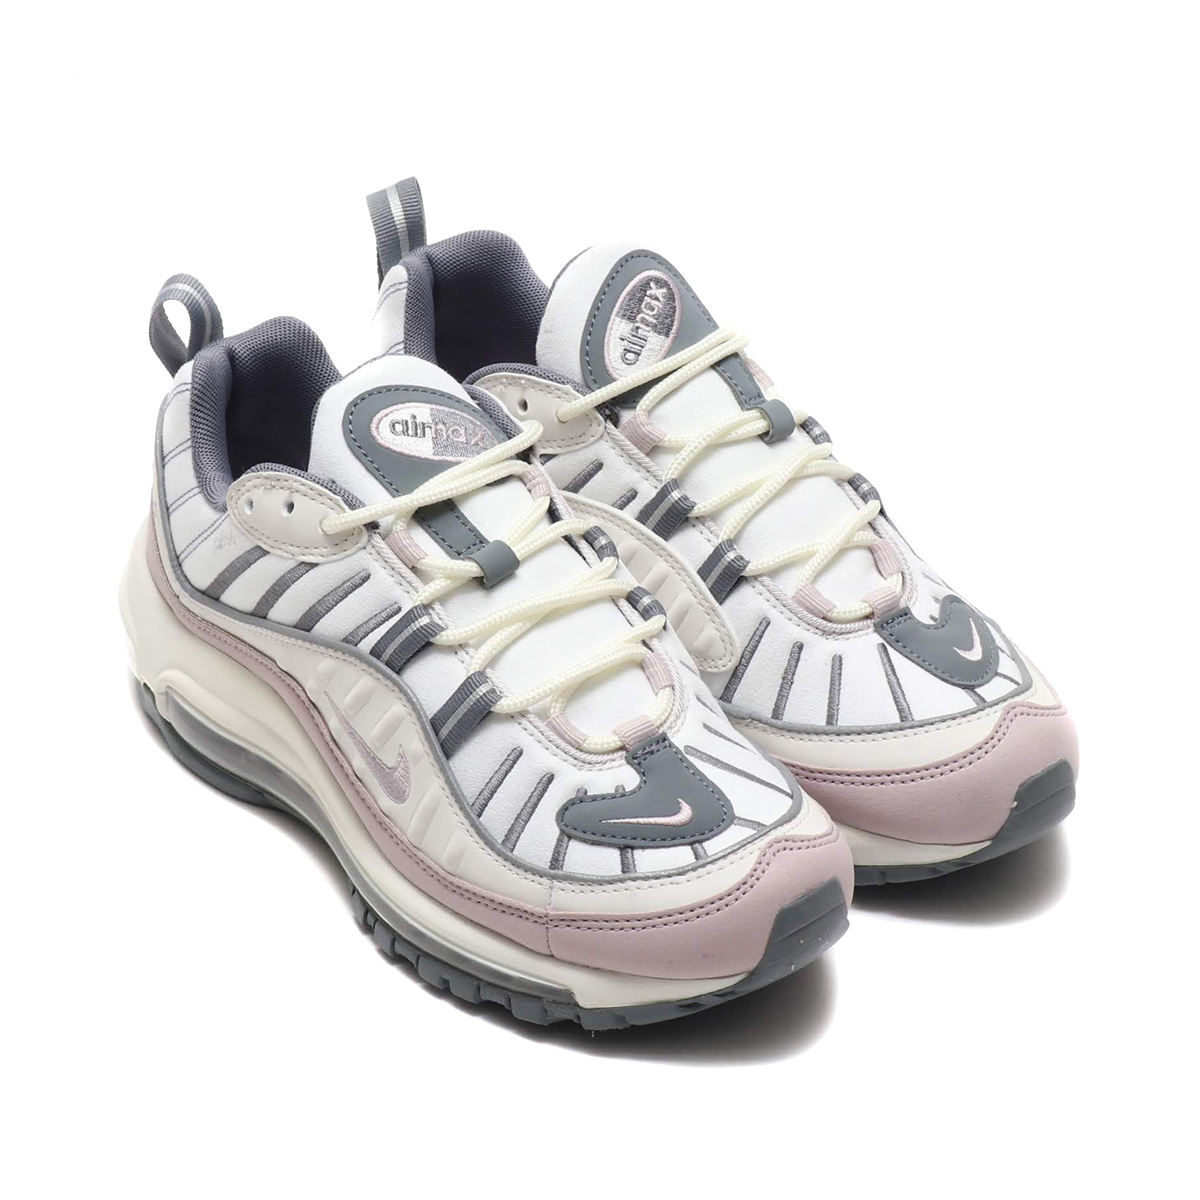 huge selection of be9dc 232f4 NIKE W AIR MAX 98 (Nike women Air Max 98) SMMT WHT/VLT ASH-CL GRY-RFLCT  19SU-I